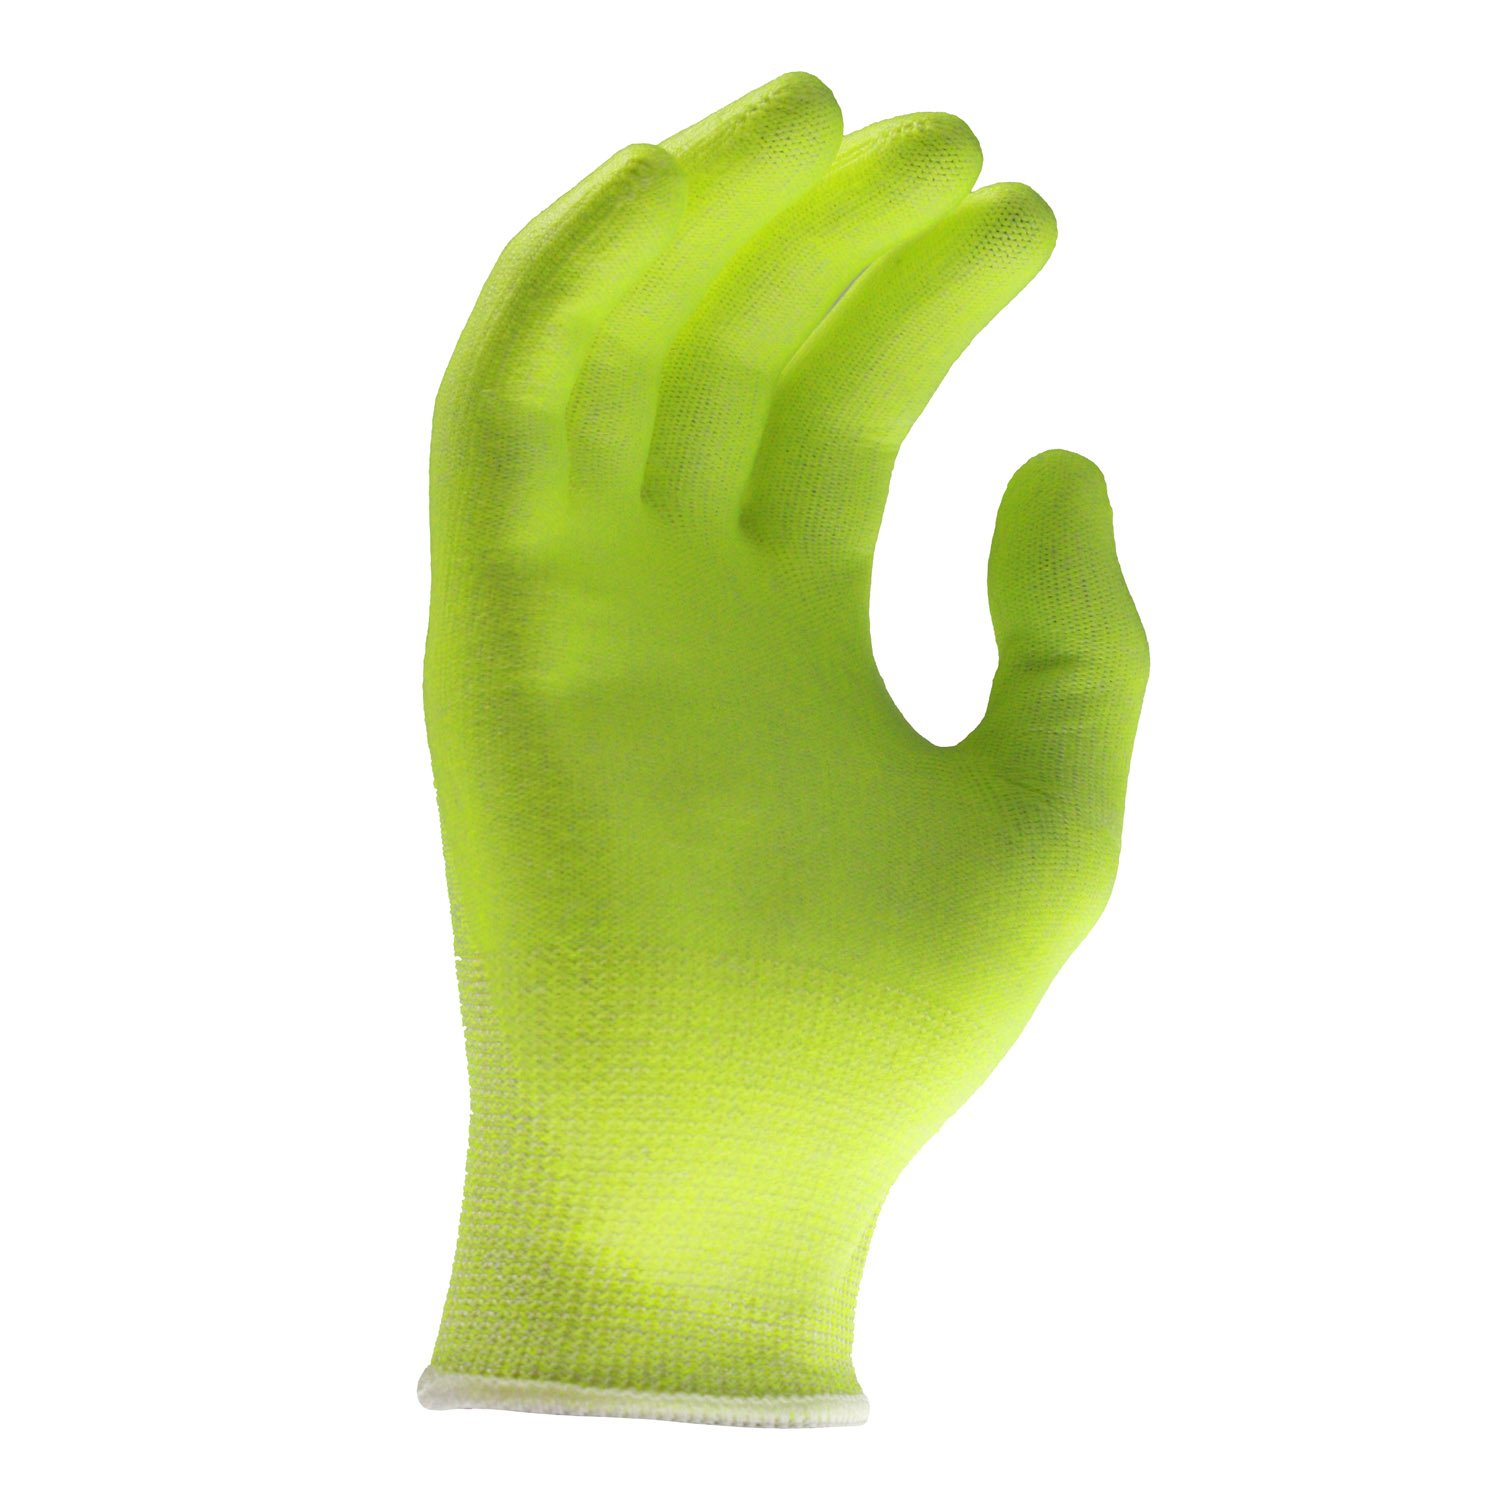 Radians RWG531L Radwear Silver Series Hi-Visibility Cut Level A2 Grip Glove (Dozen) by Radians (Image #3)